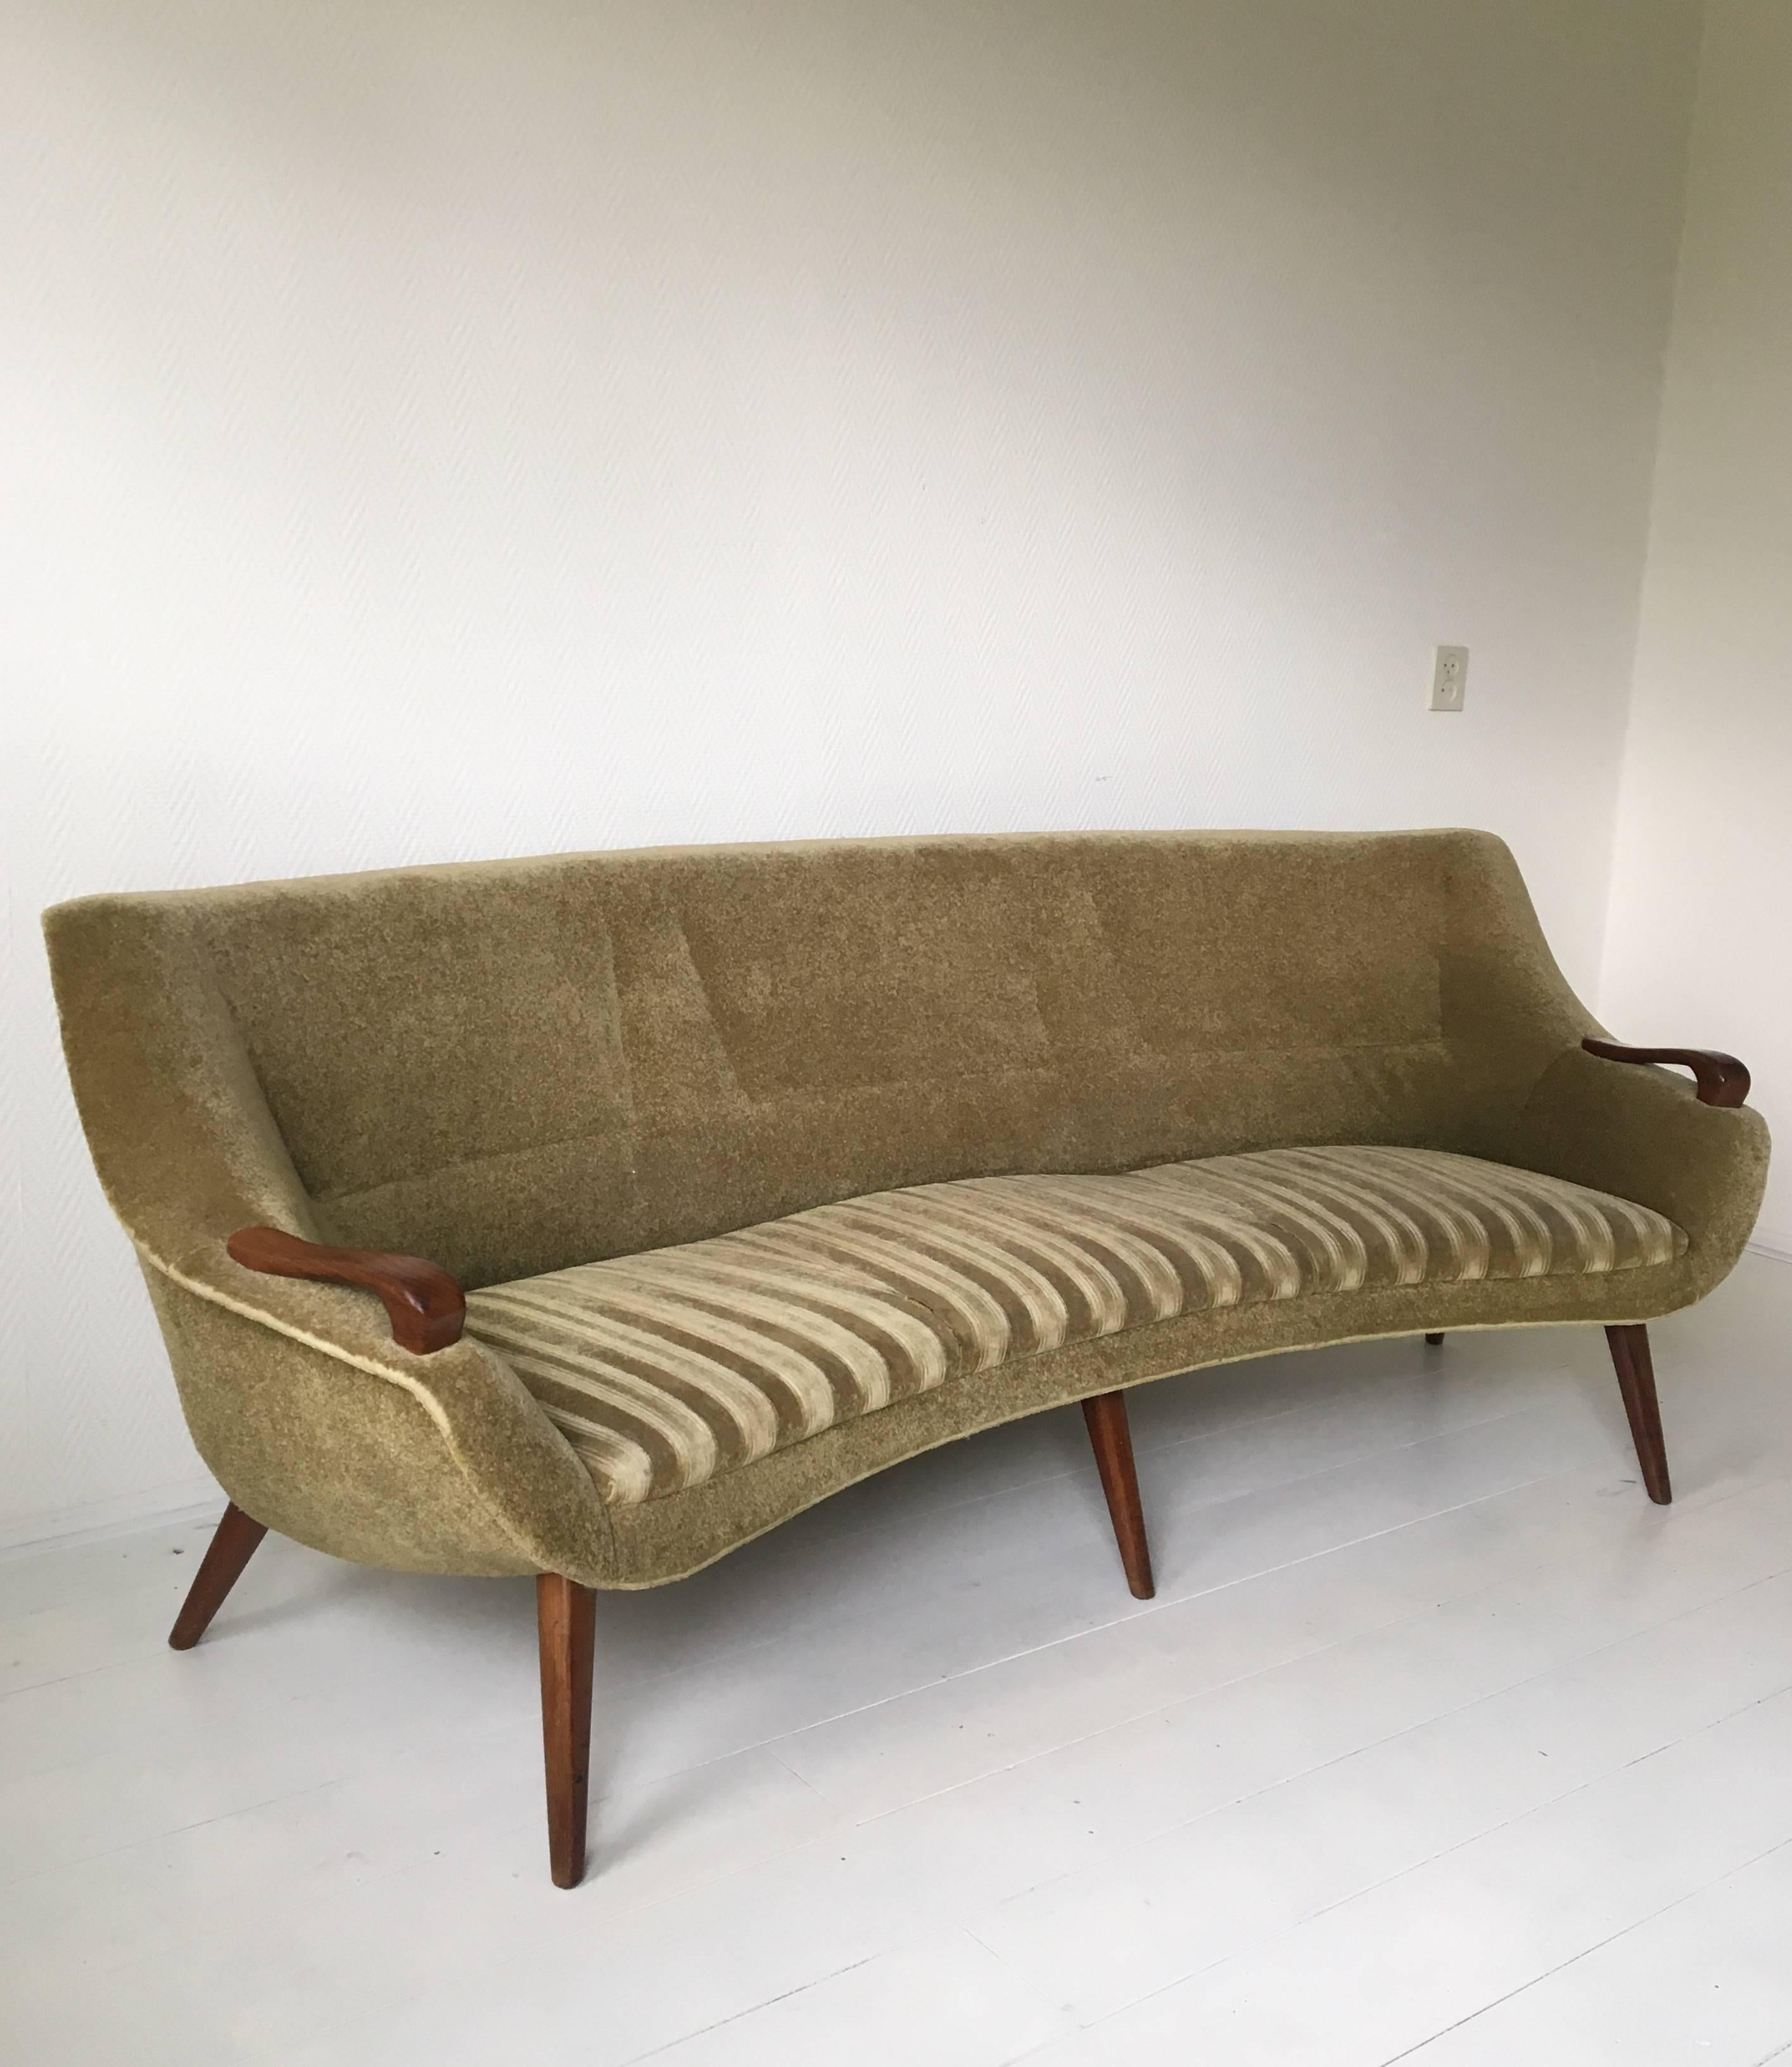 Ico Parisi Style Sofa Set With Teak Details And Green Fabric. LAST CHANCE  SALE